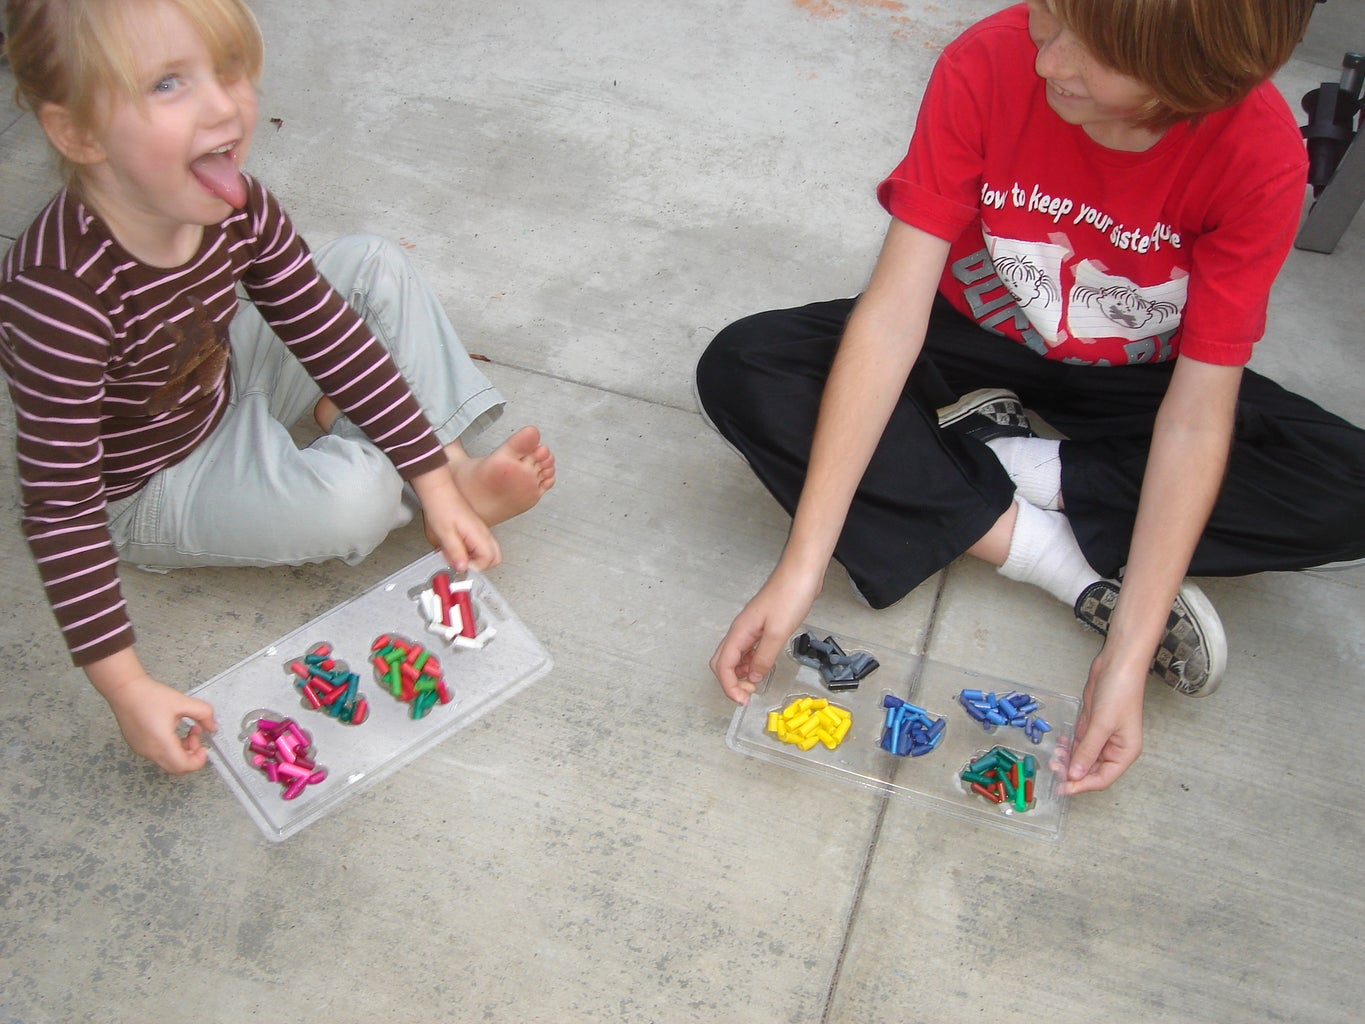 How-to Recycle Those Crayon Stubs Into a Swell Homemade Gift